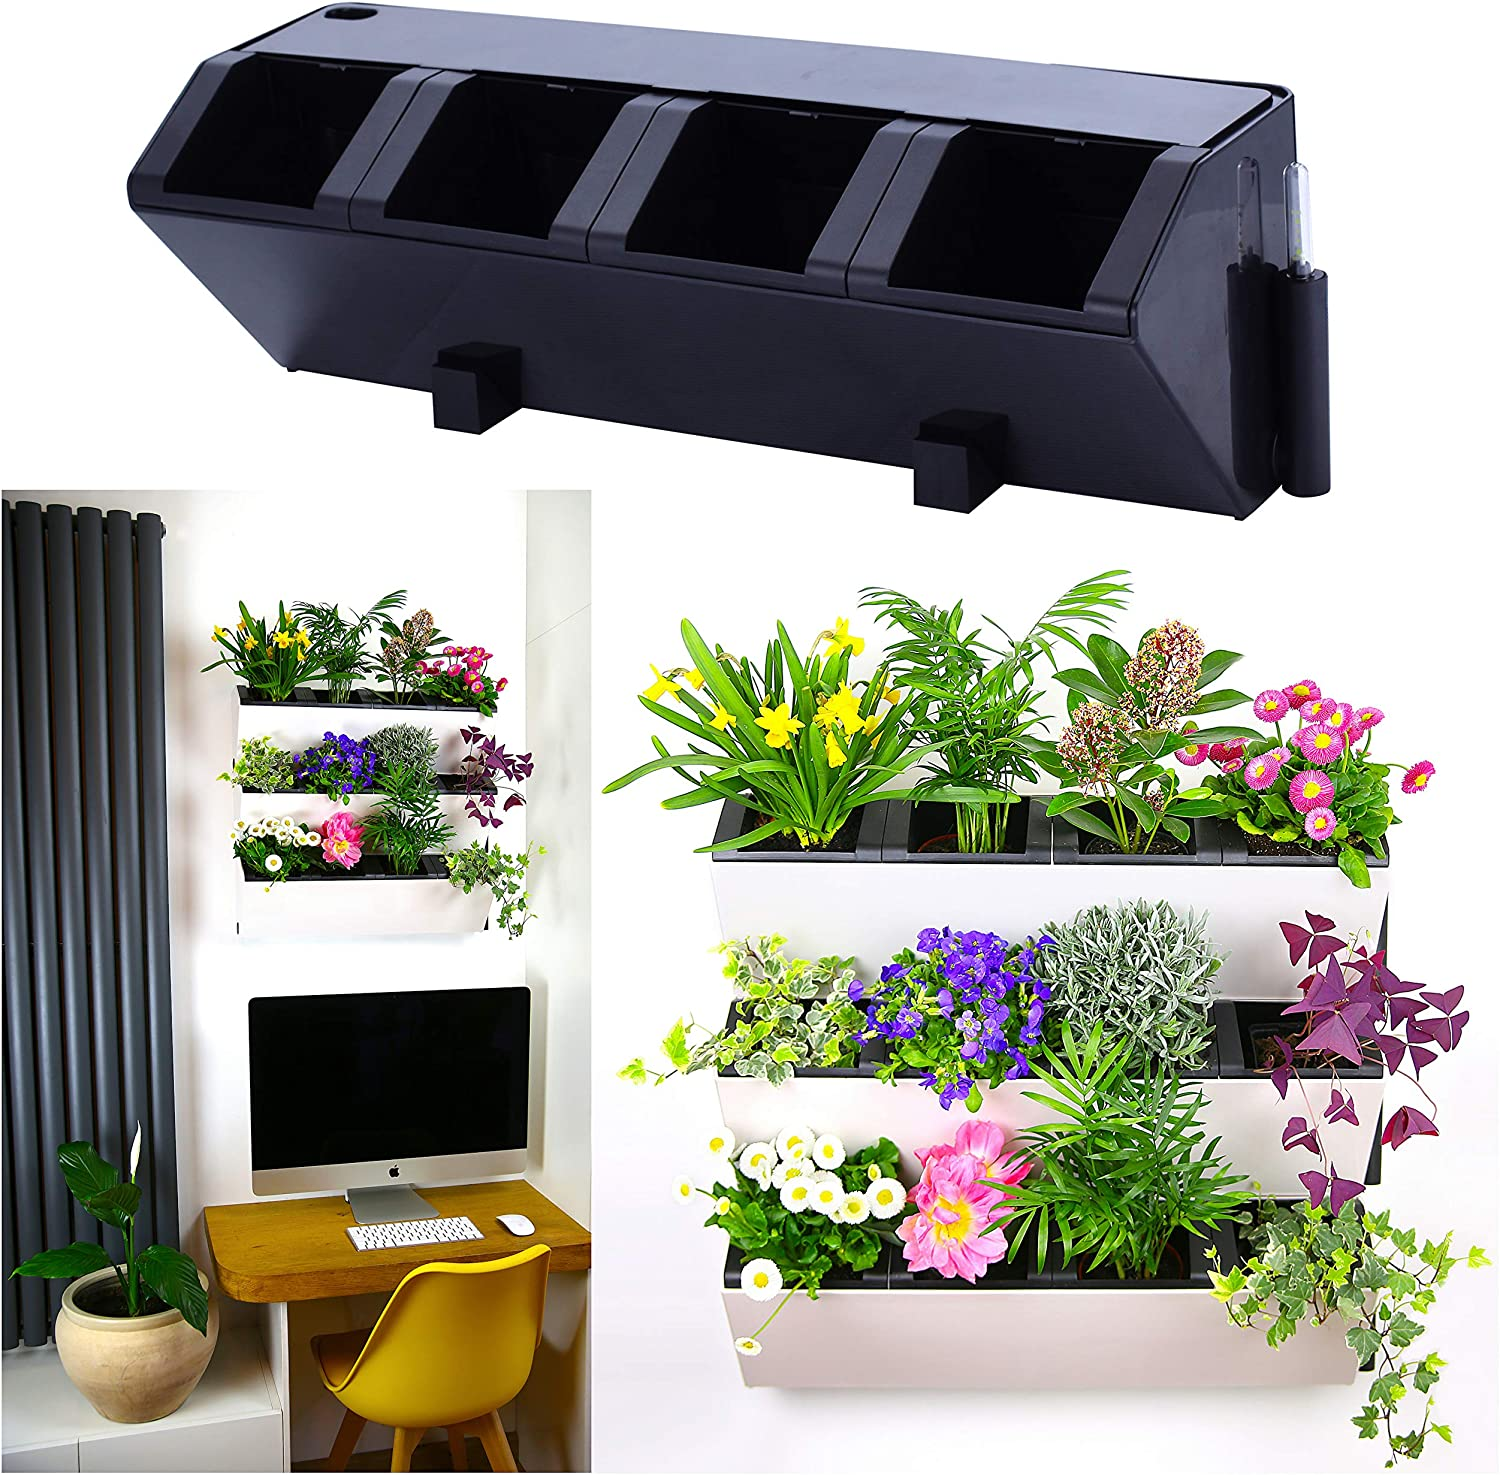 Self Watering Wall Planter by My Easygro Indoor or Outdoor Living Wall Vertical Hanging Planter Urban Garden Herbs Flowers Vegetables Stand Wall or Balcony Mounted Black